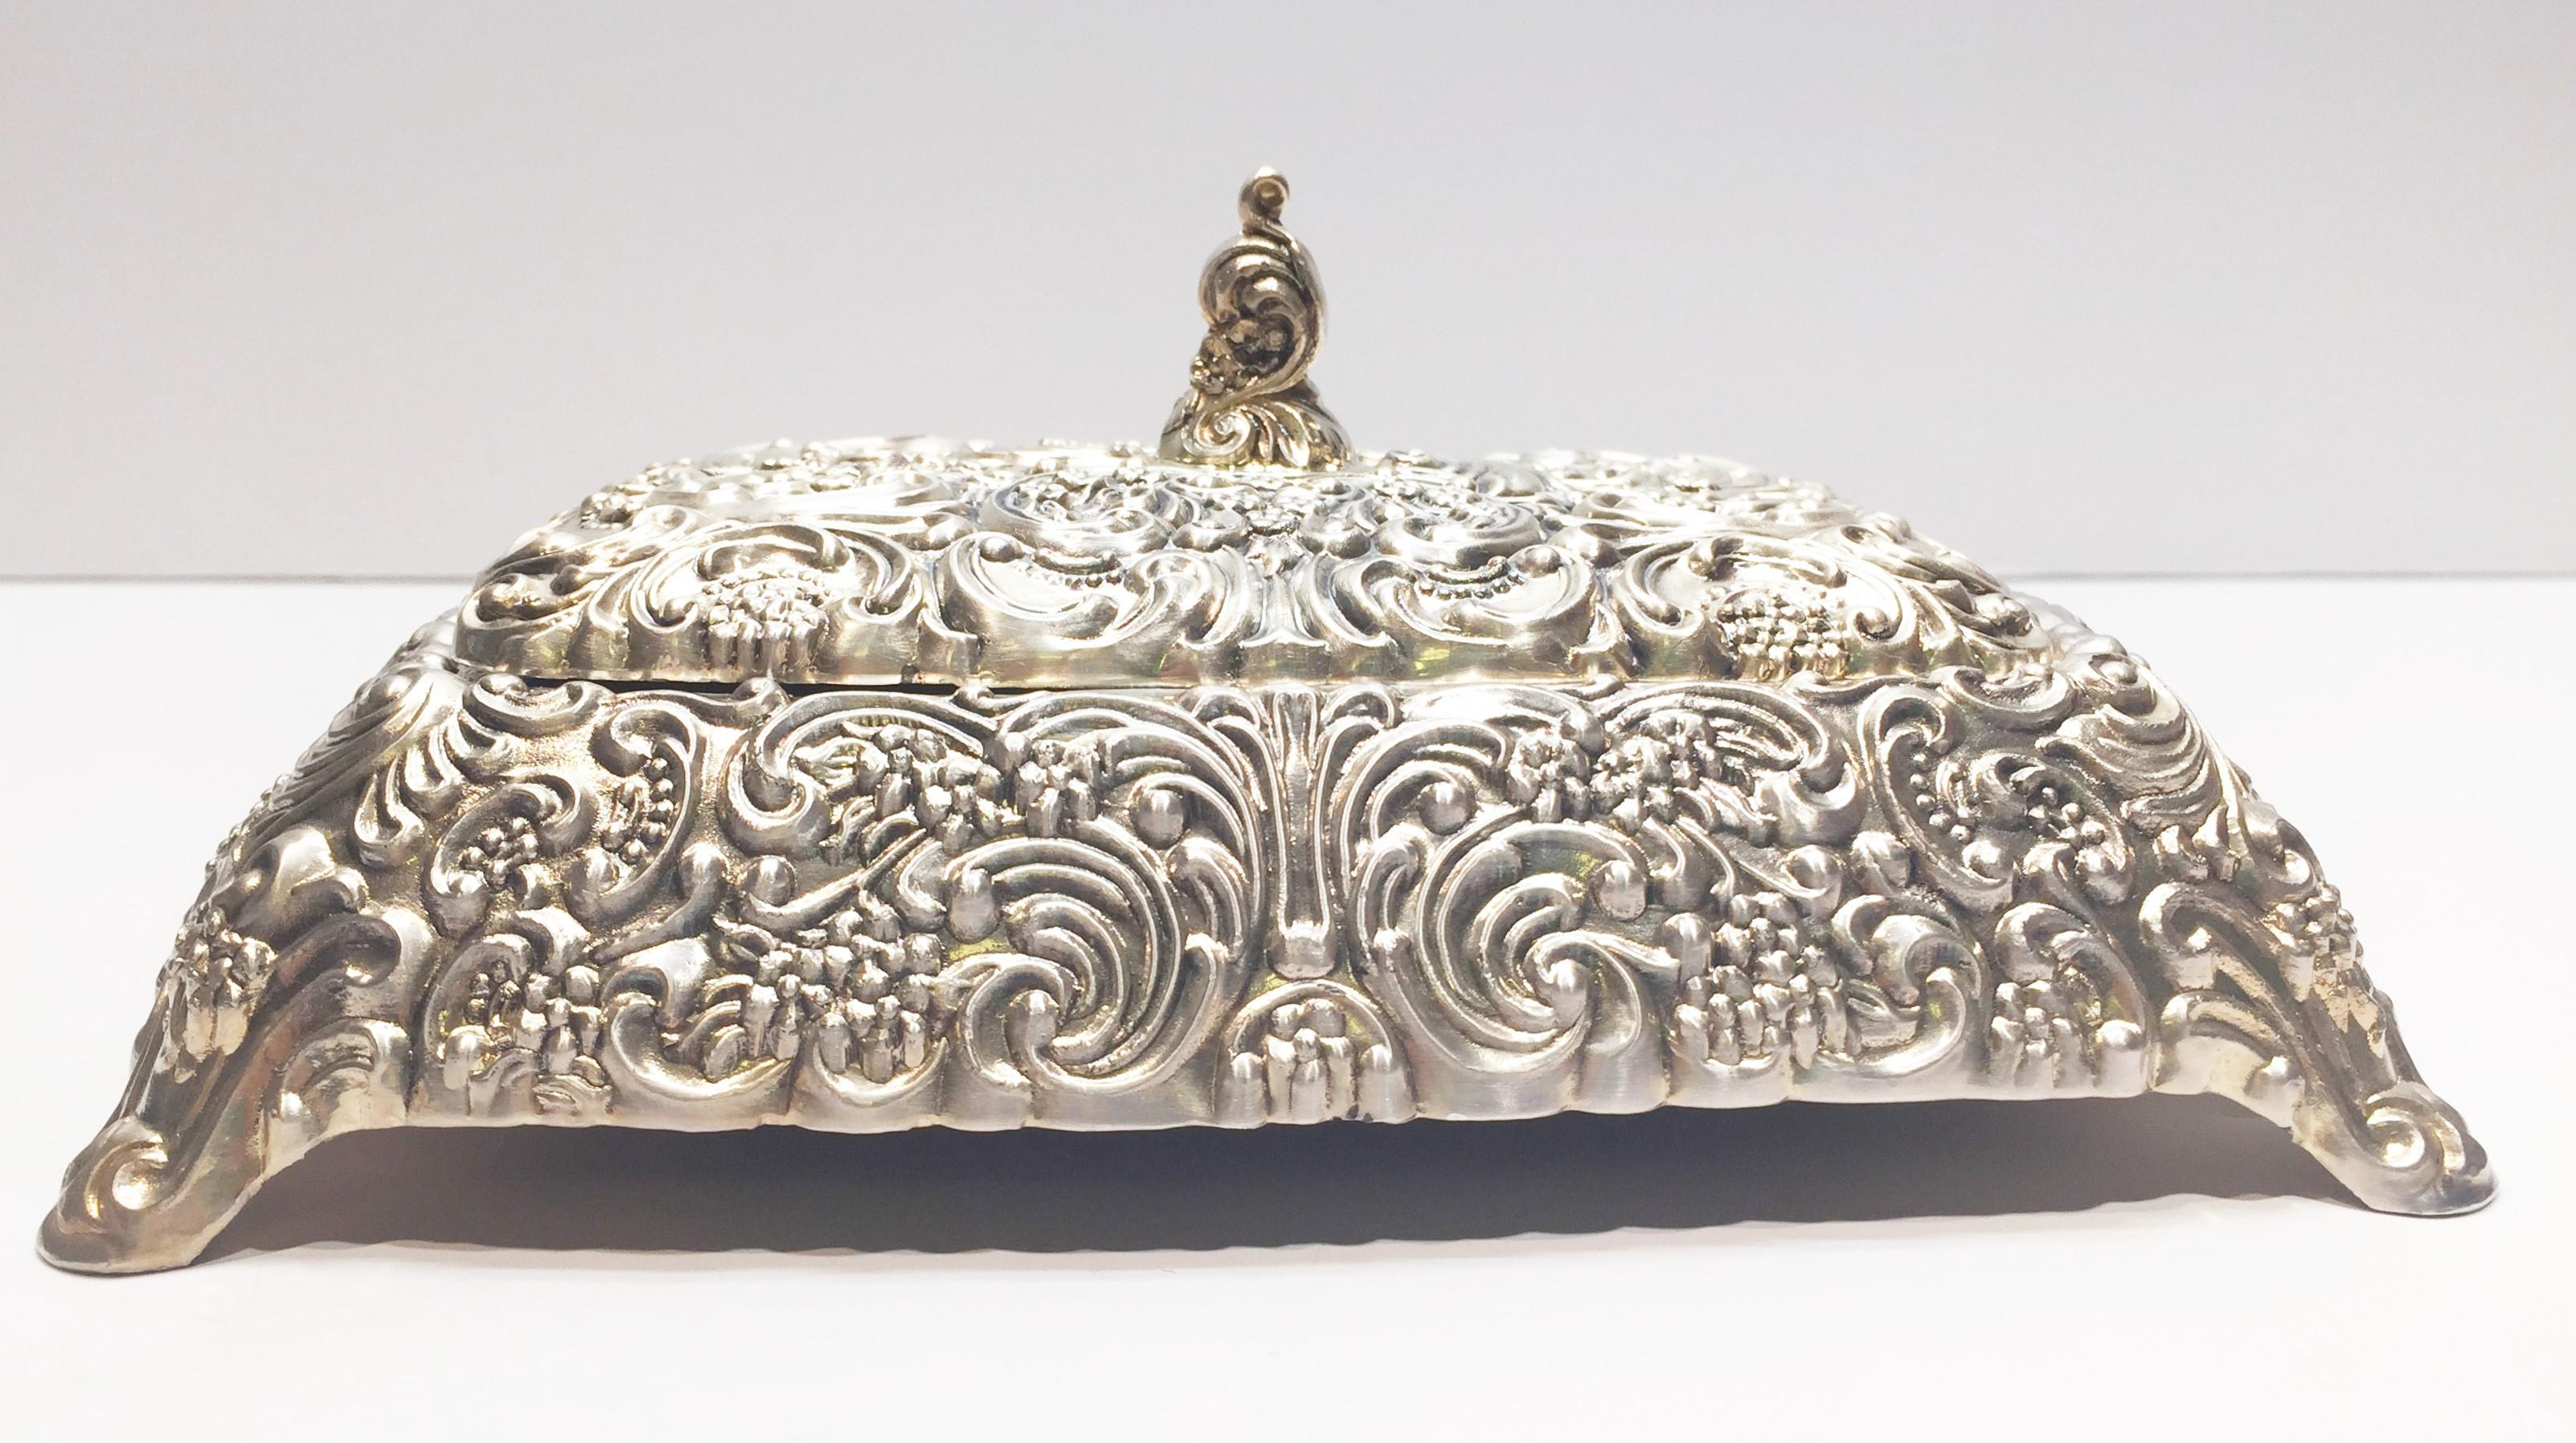 Silverplated Vintage Jewelry Box by David Orgell Roxanne Anjou